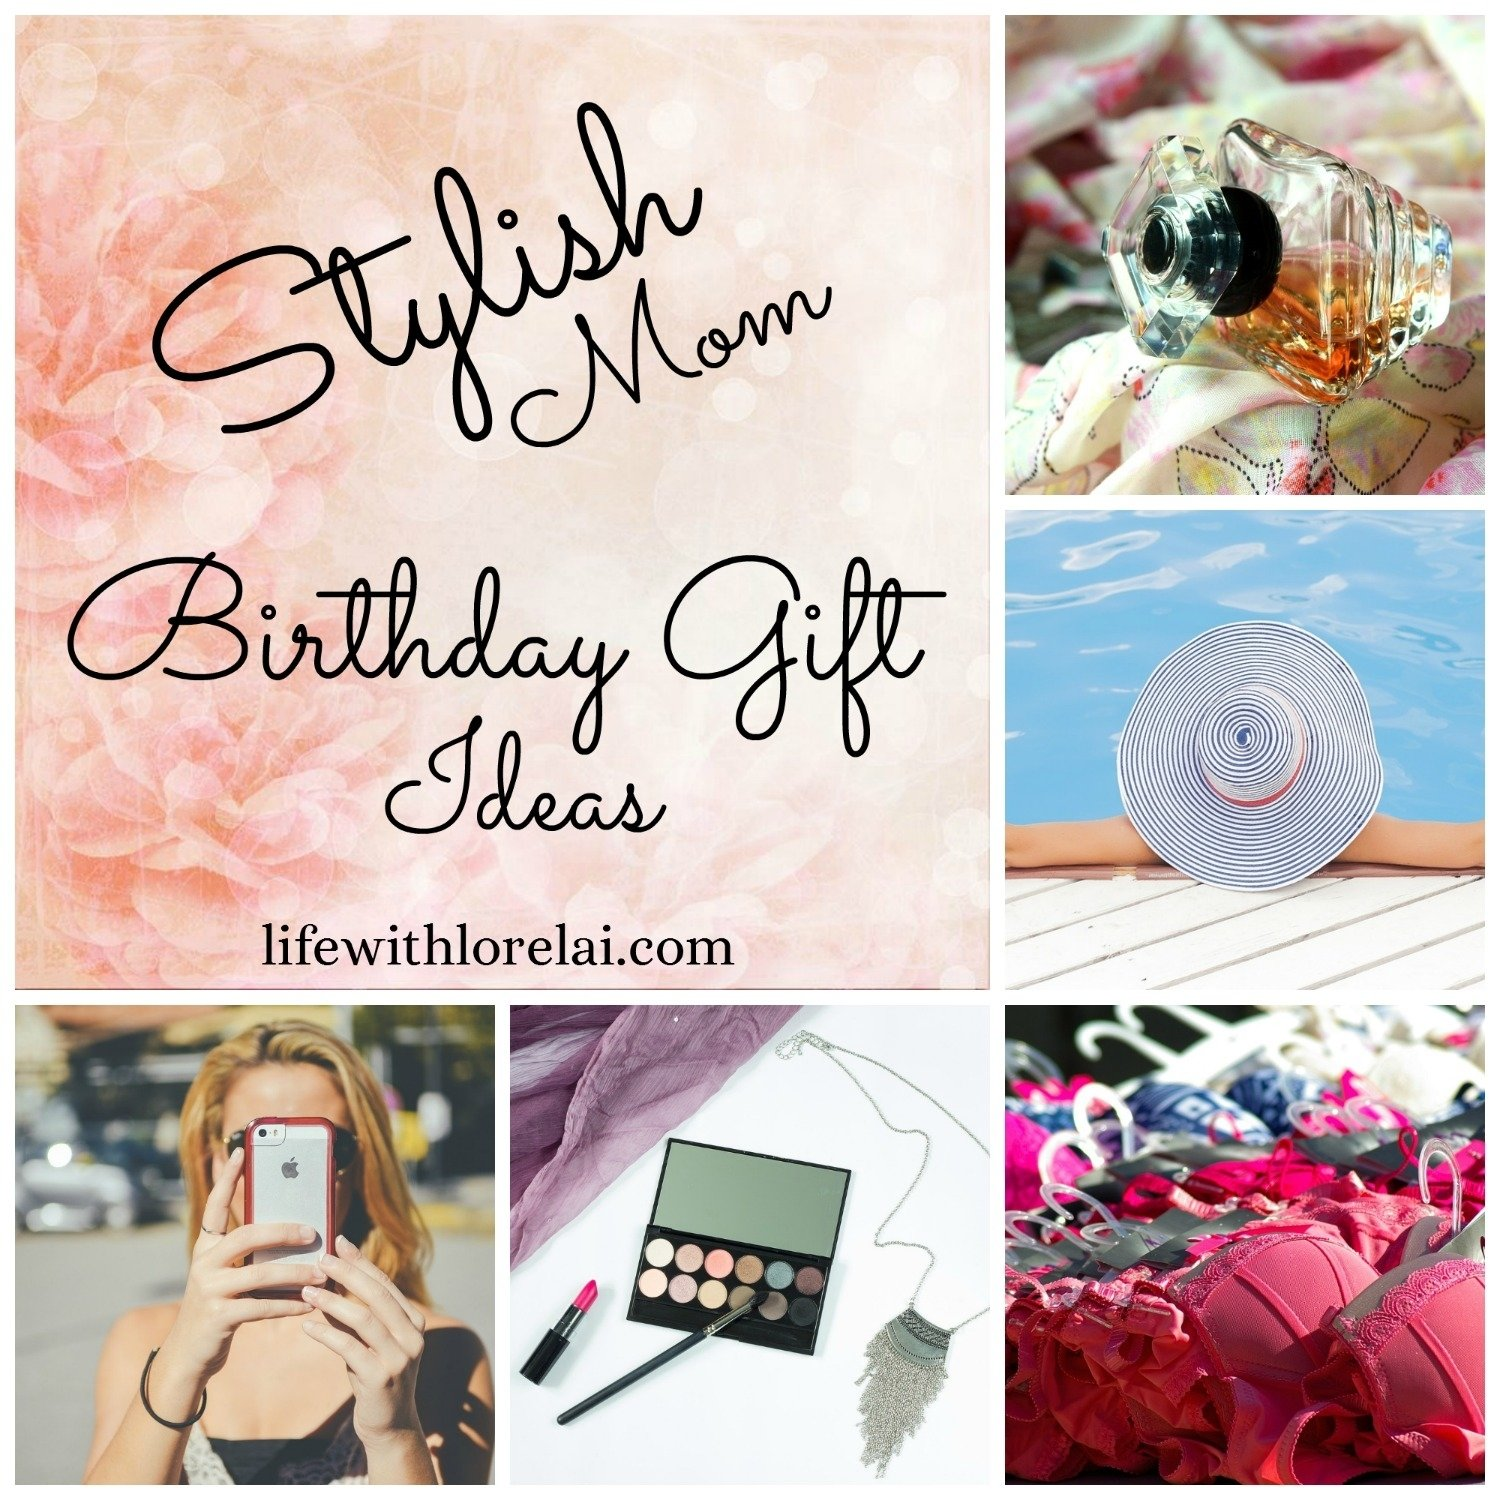 10 Stylish Mom 60Th Birthday Gift Ideas